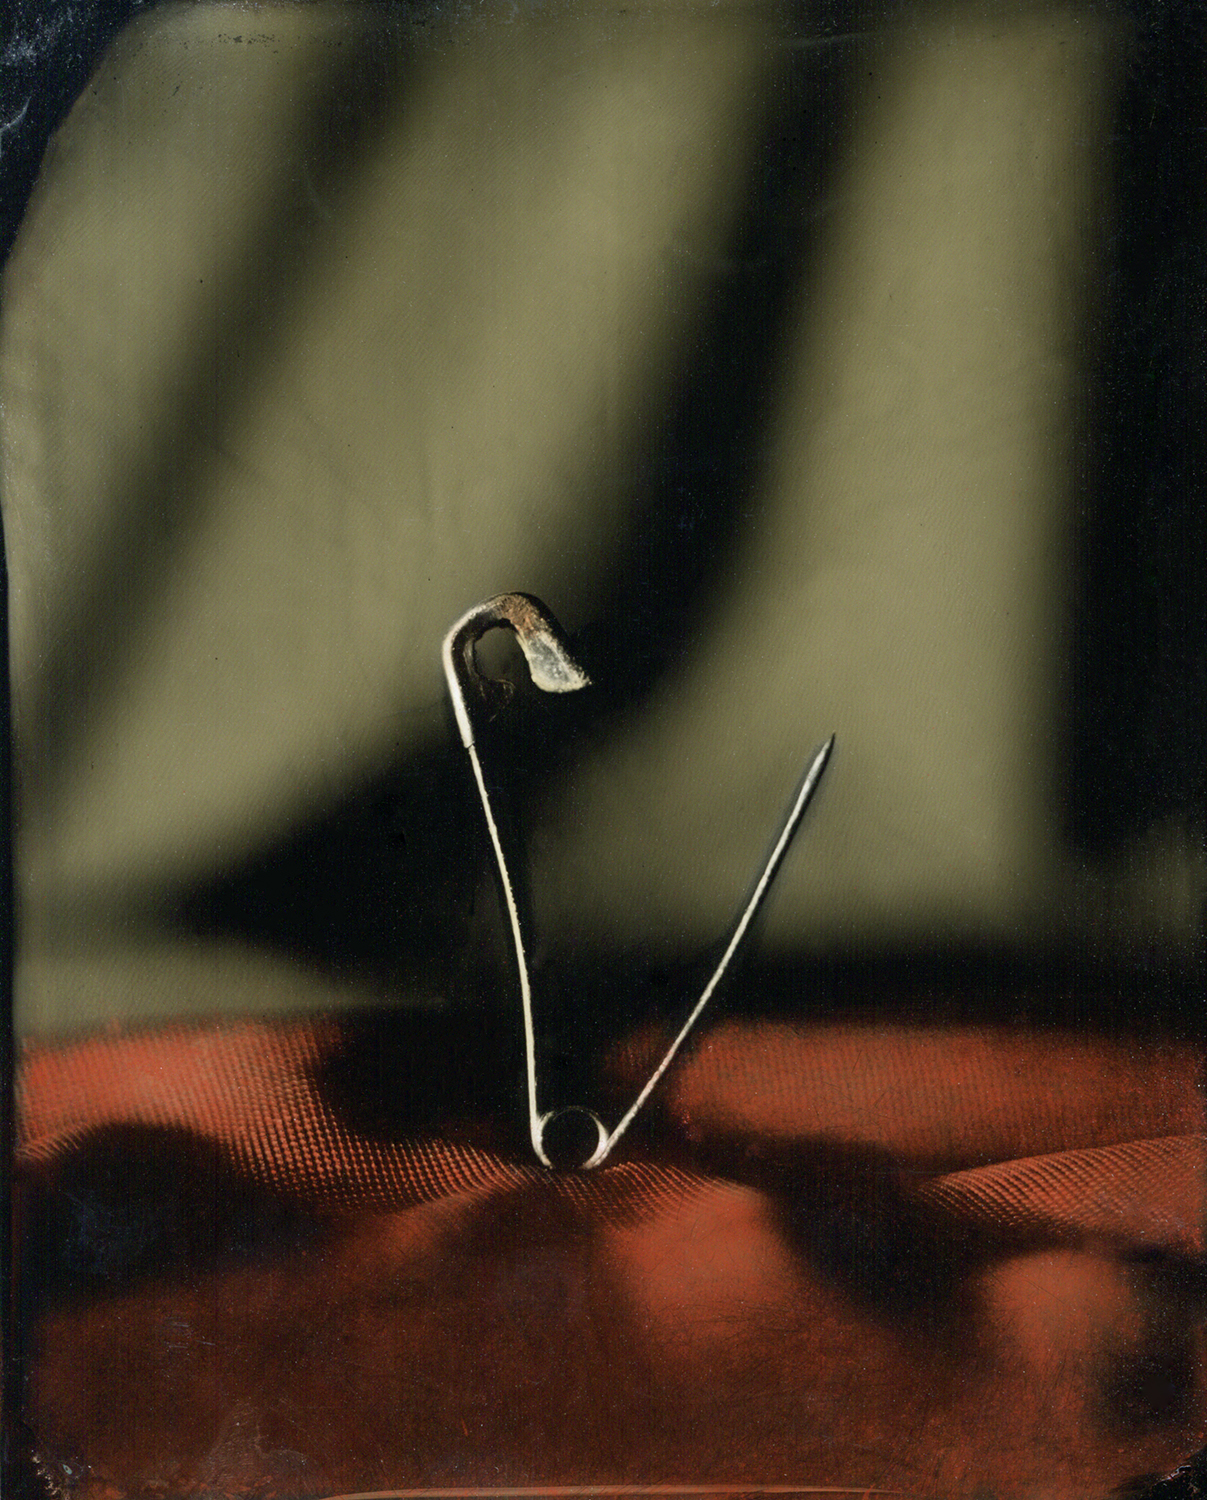 Open Safety Pin, High Street, from series, Lost. Broken. Found. Fixed